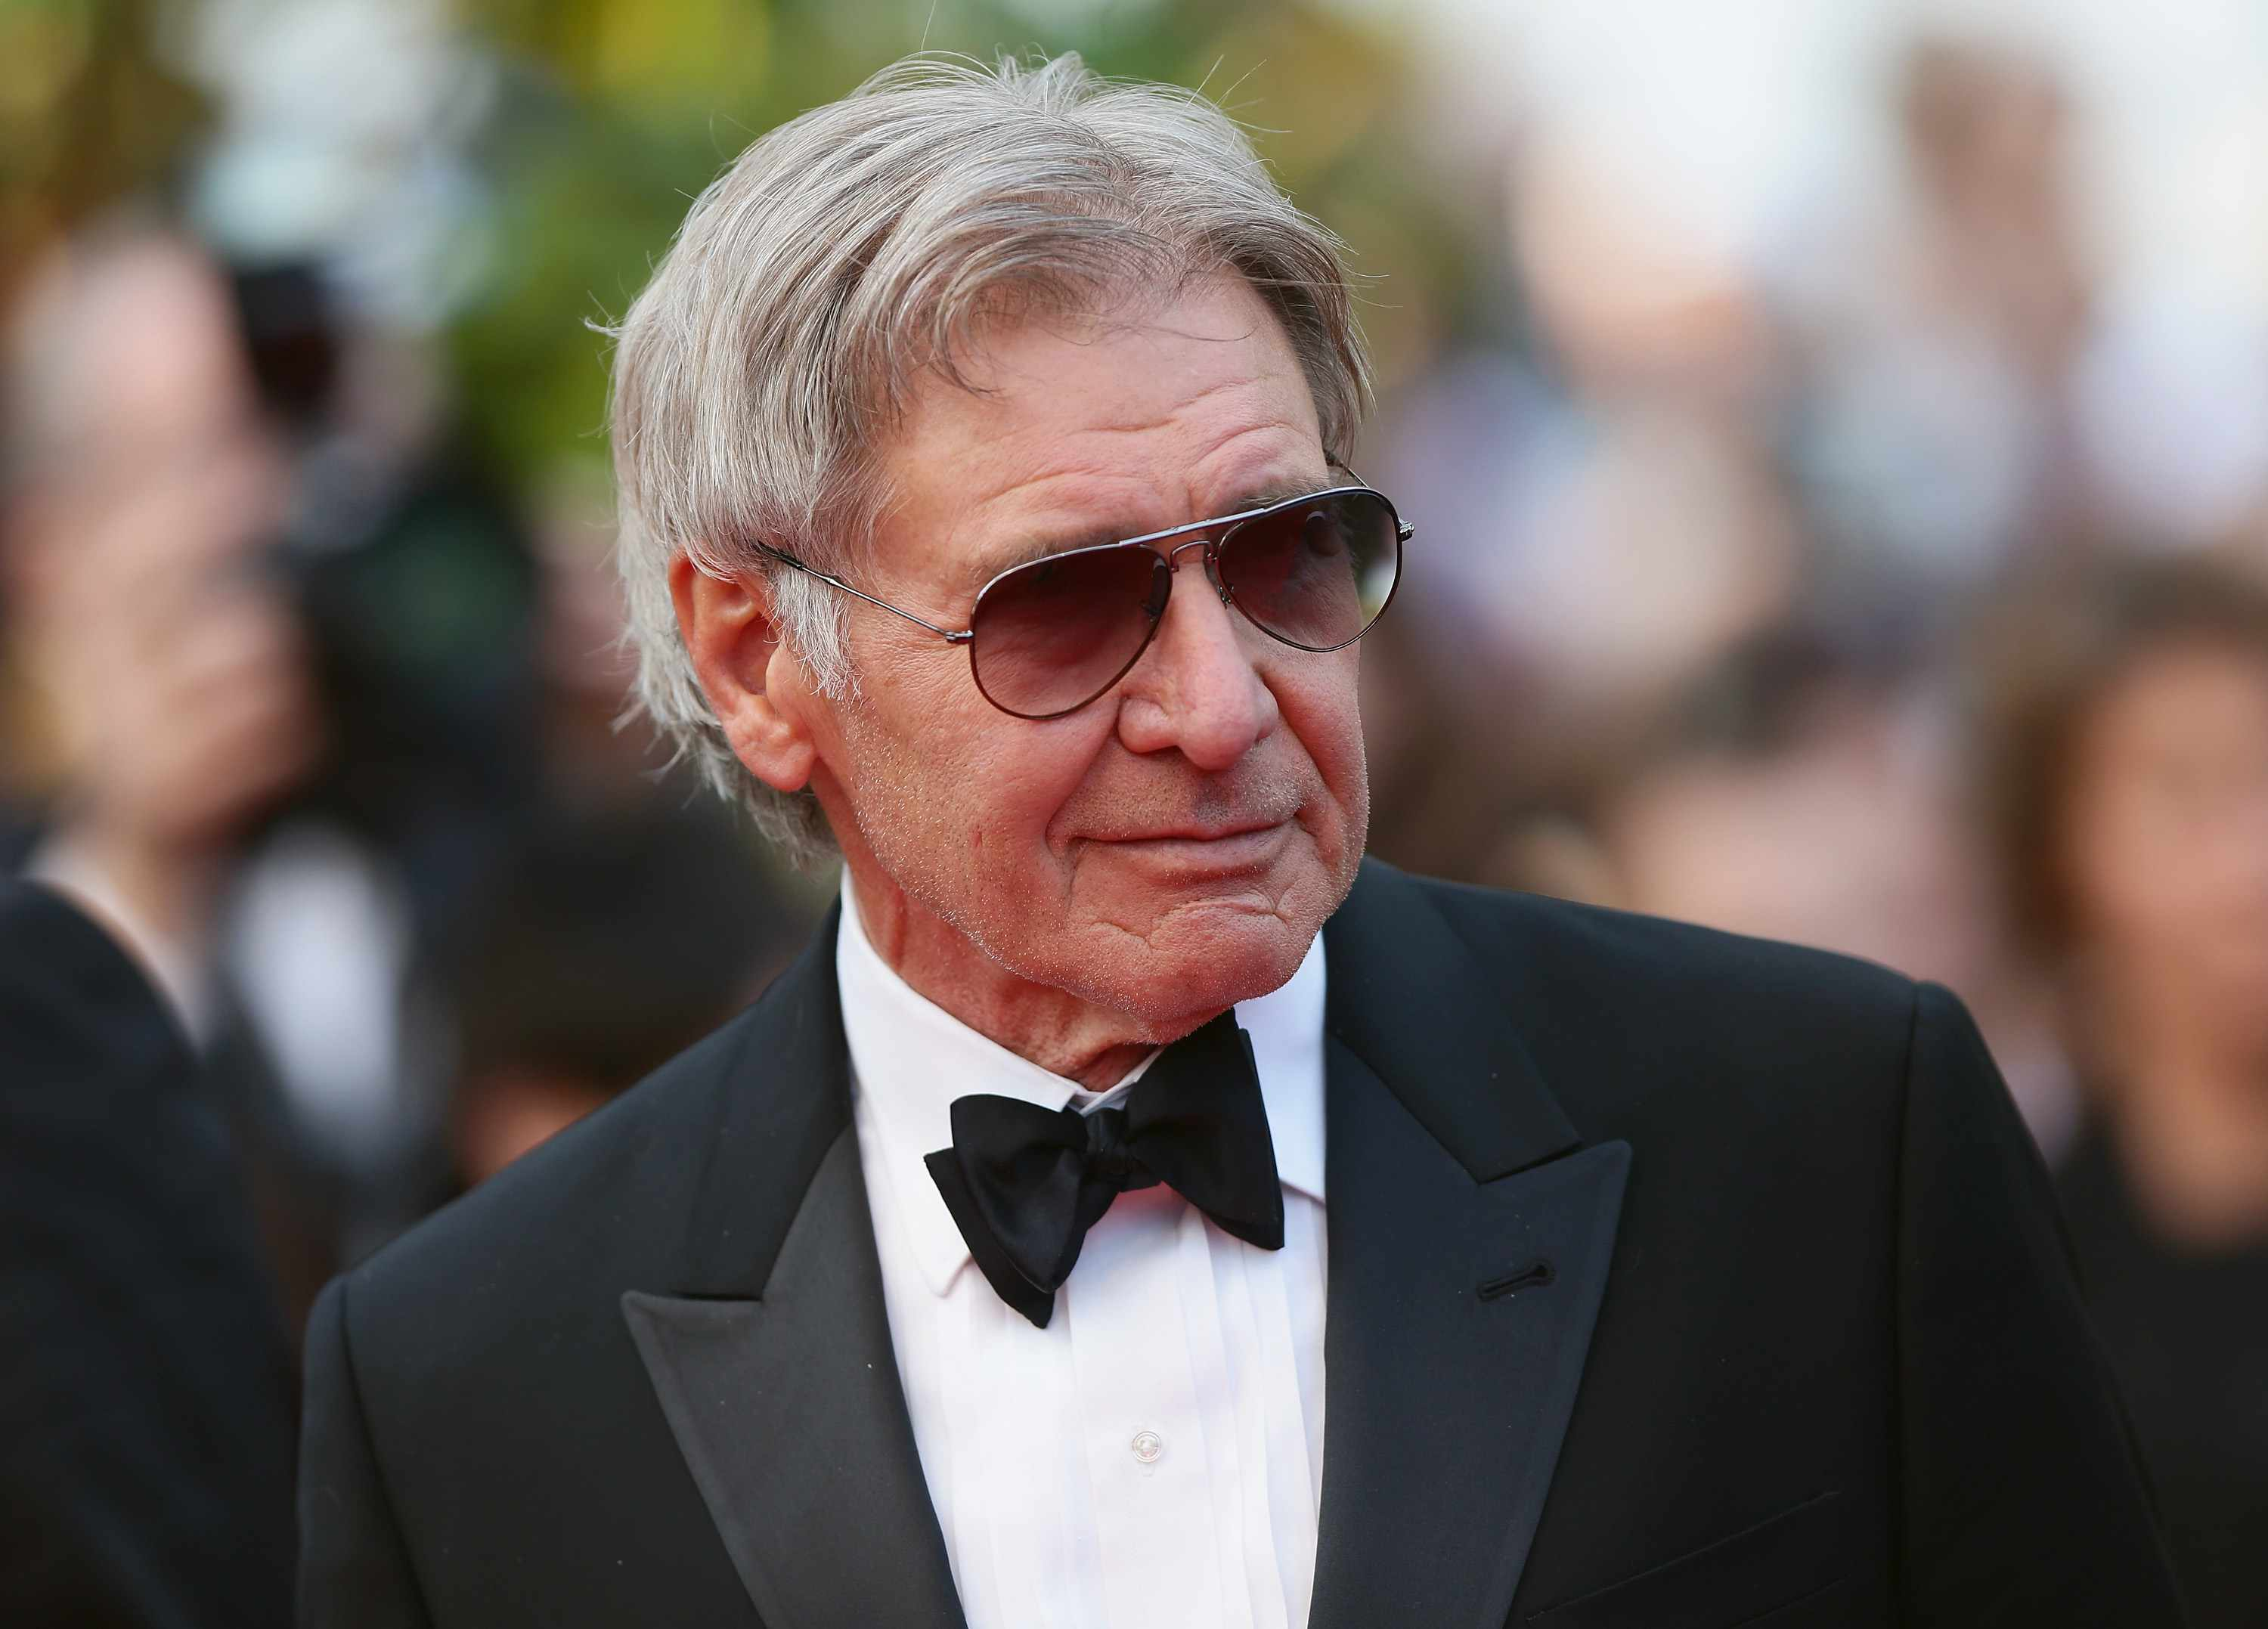 """CANNES, FRANCE - MAY 18:  Harrison Ford attends """"The Expendables 3"""" premiere during the 67th Annual Cannes Film Festival on May 18, 2014 in Cannes, France.  (Photo by Vittorio Zunino Celotto/Getty Images)"""